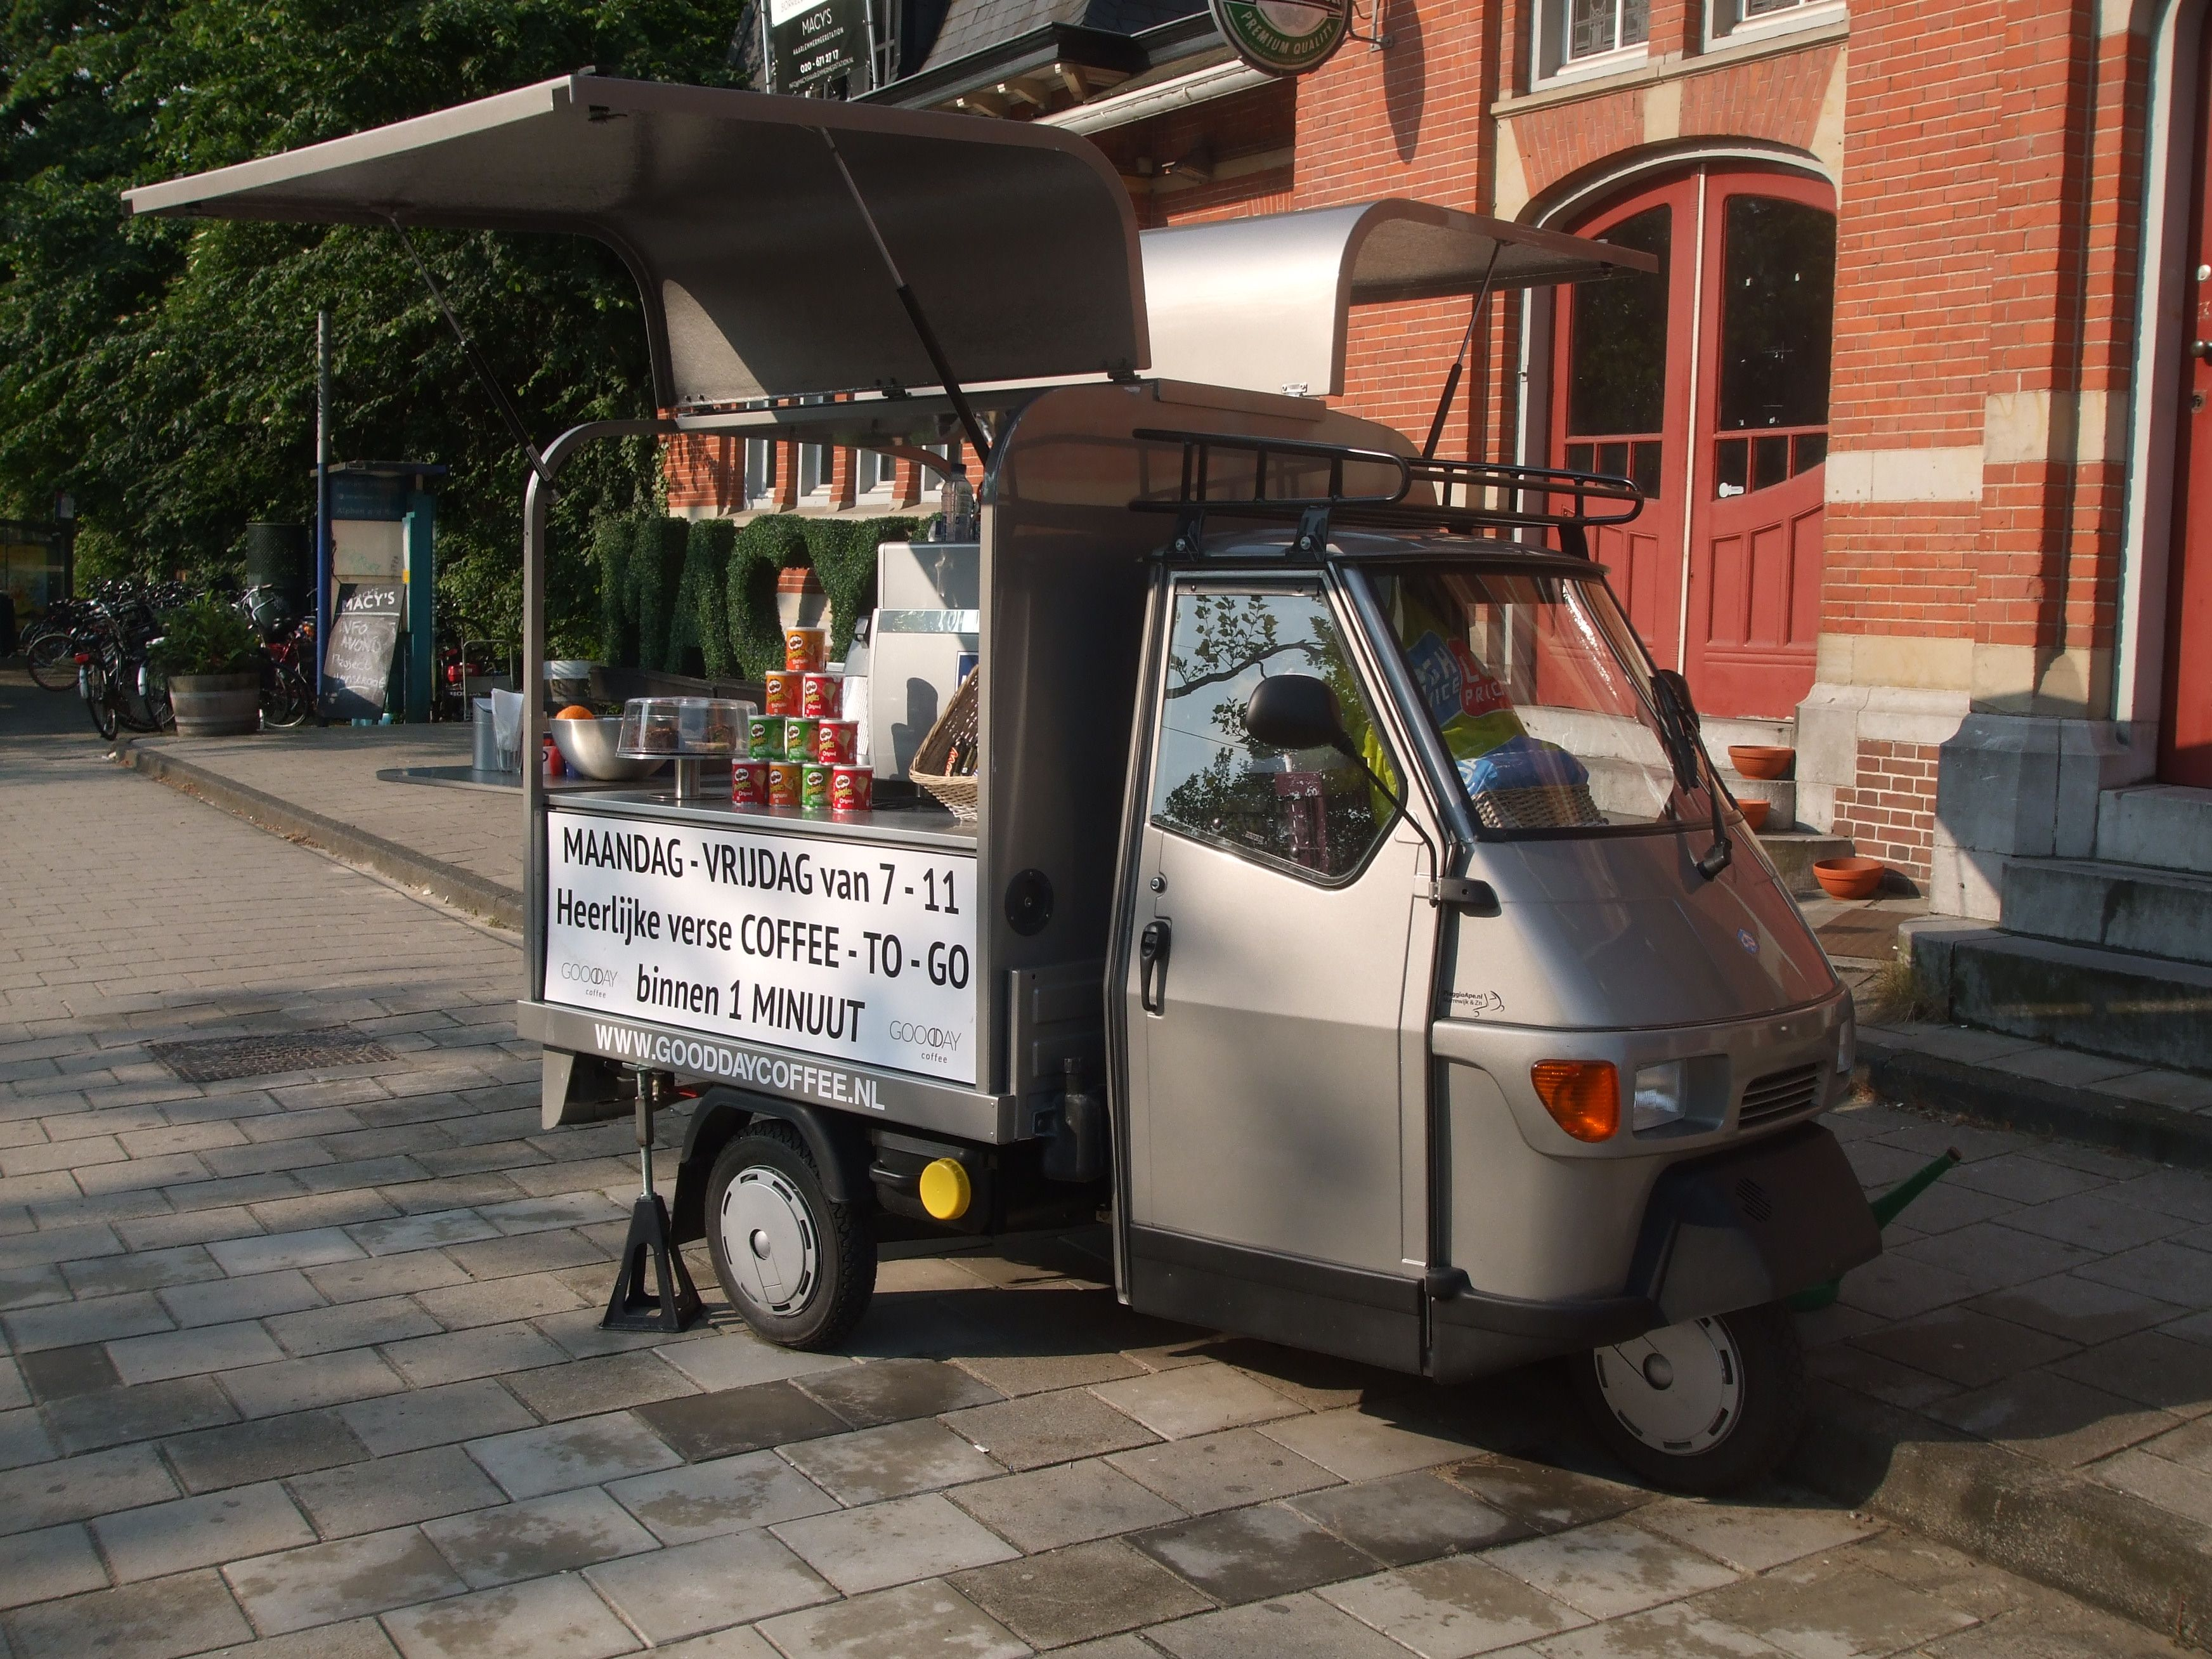 tuktuk silver black for coffee to go tuktuk mini cars. Black Bedroom Furniture Sets. Home Design Ideas